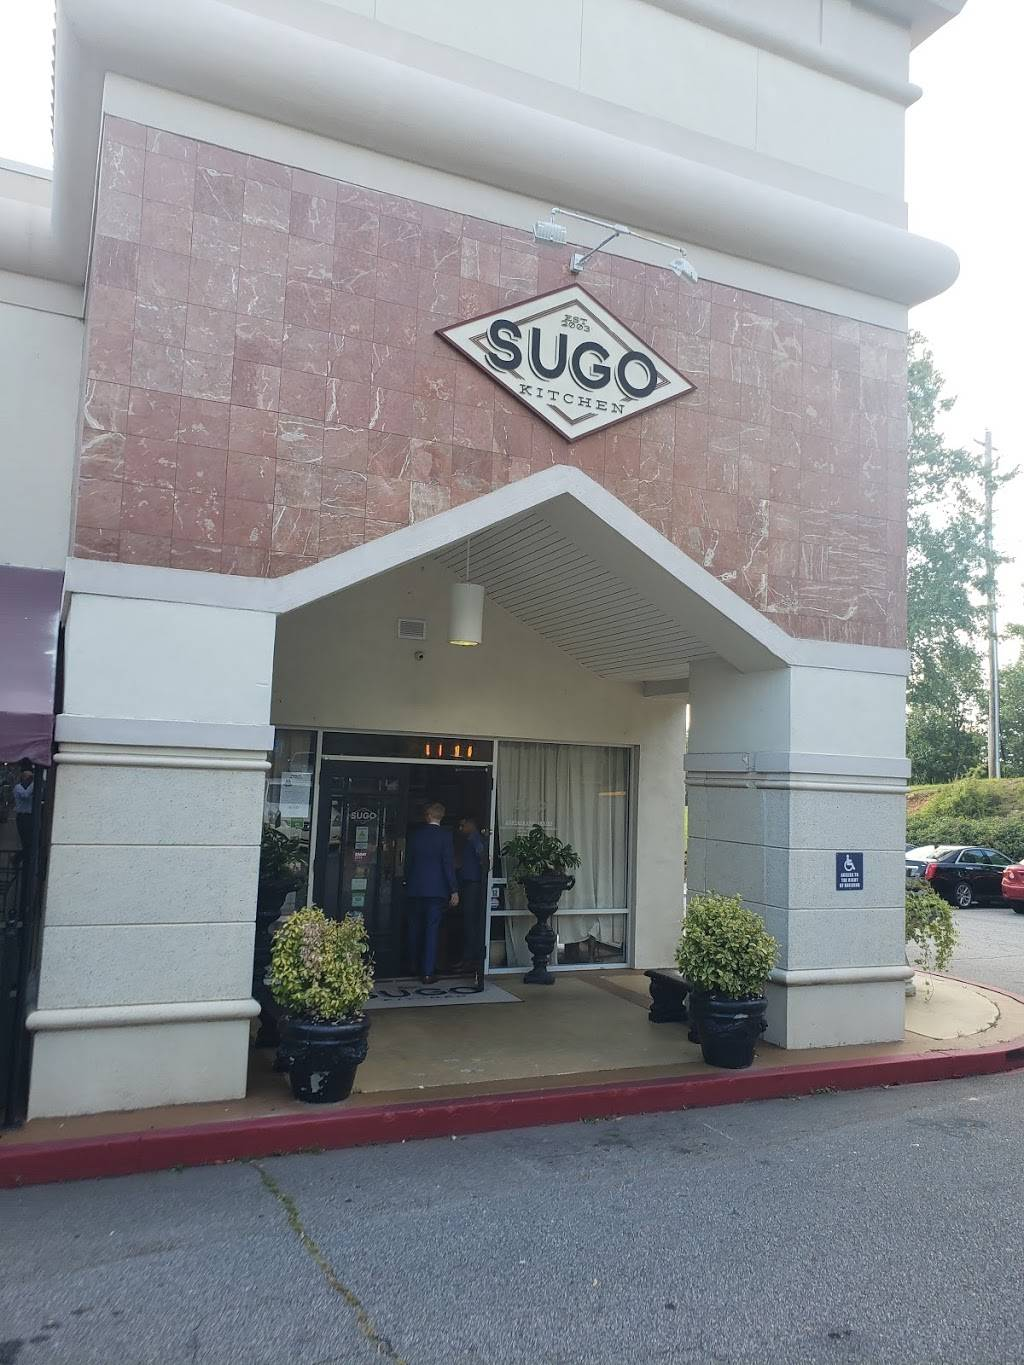 Sugo | restaurant | 10305 Medlock Bridge Rd, Johns Creek, GA 30097, USA | 7708178000 OR +1 770-817-8000